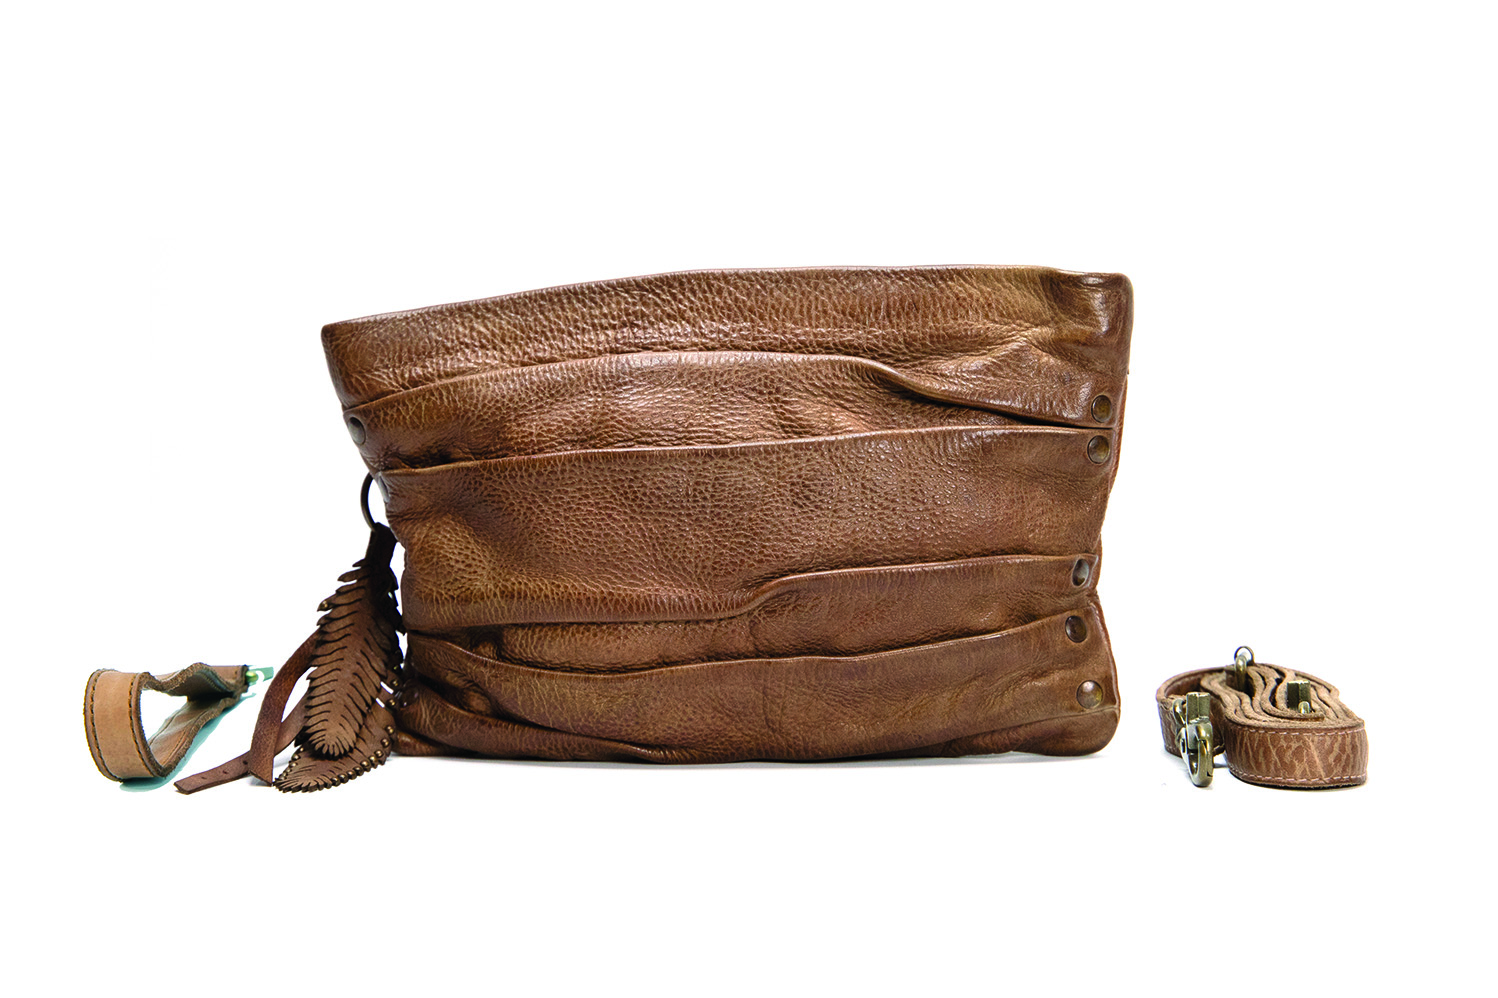 Vintage, retro and boho inspired genuine leather clutch